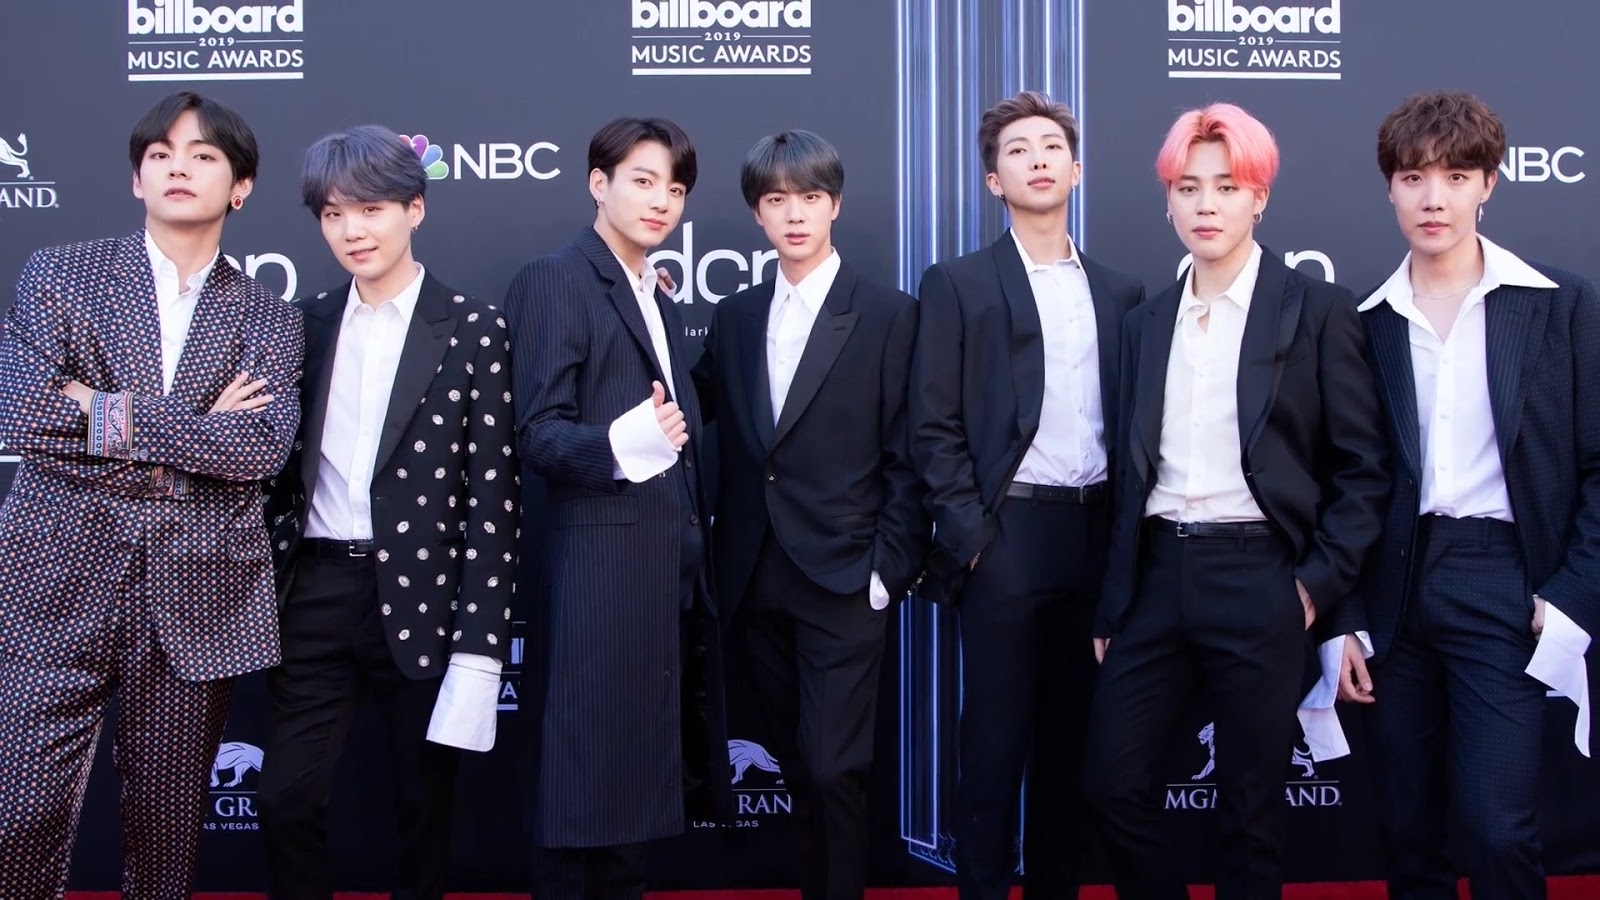 BTS_on_the_Billboard_Music_Awards_red_carpet,_1_May_2019